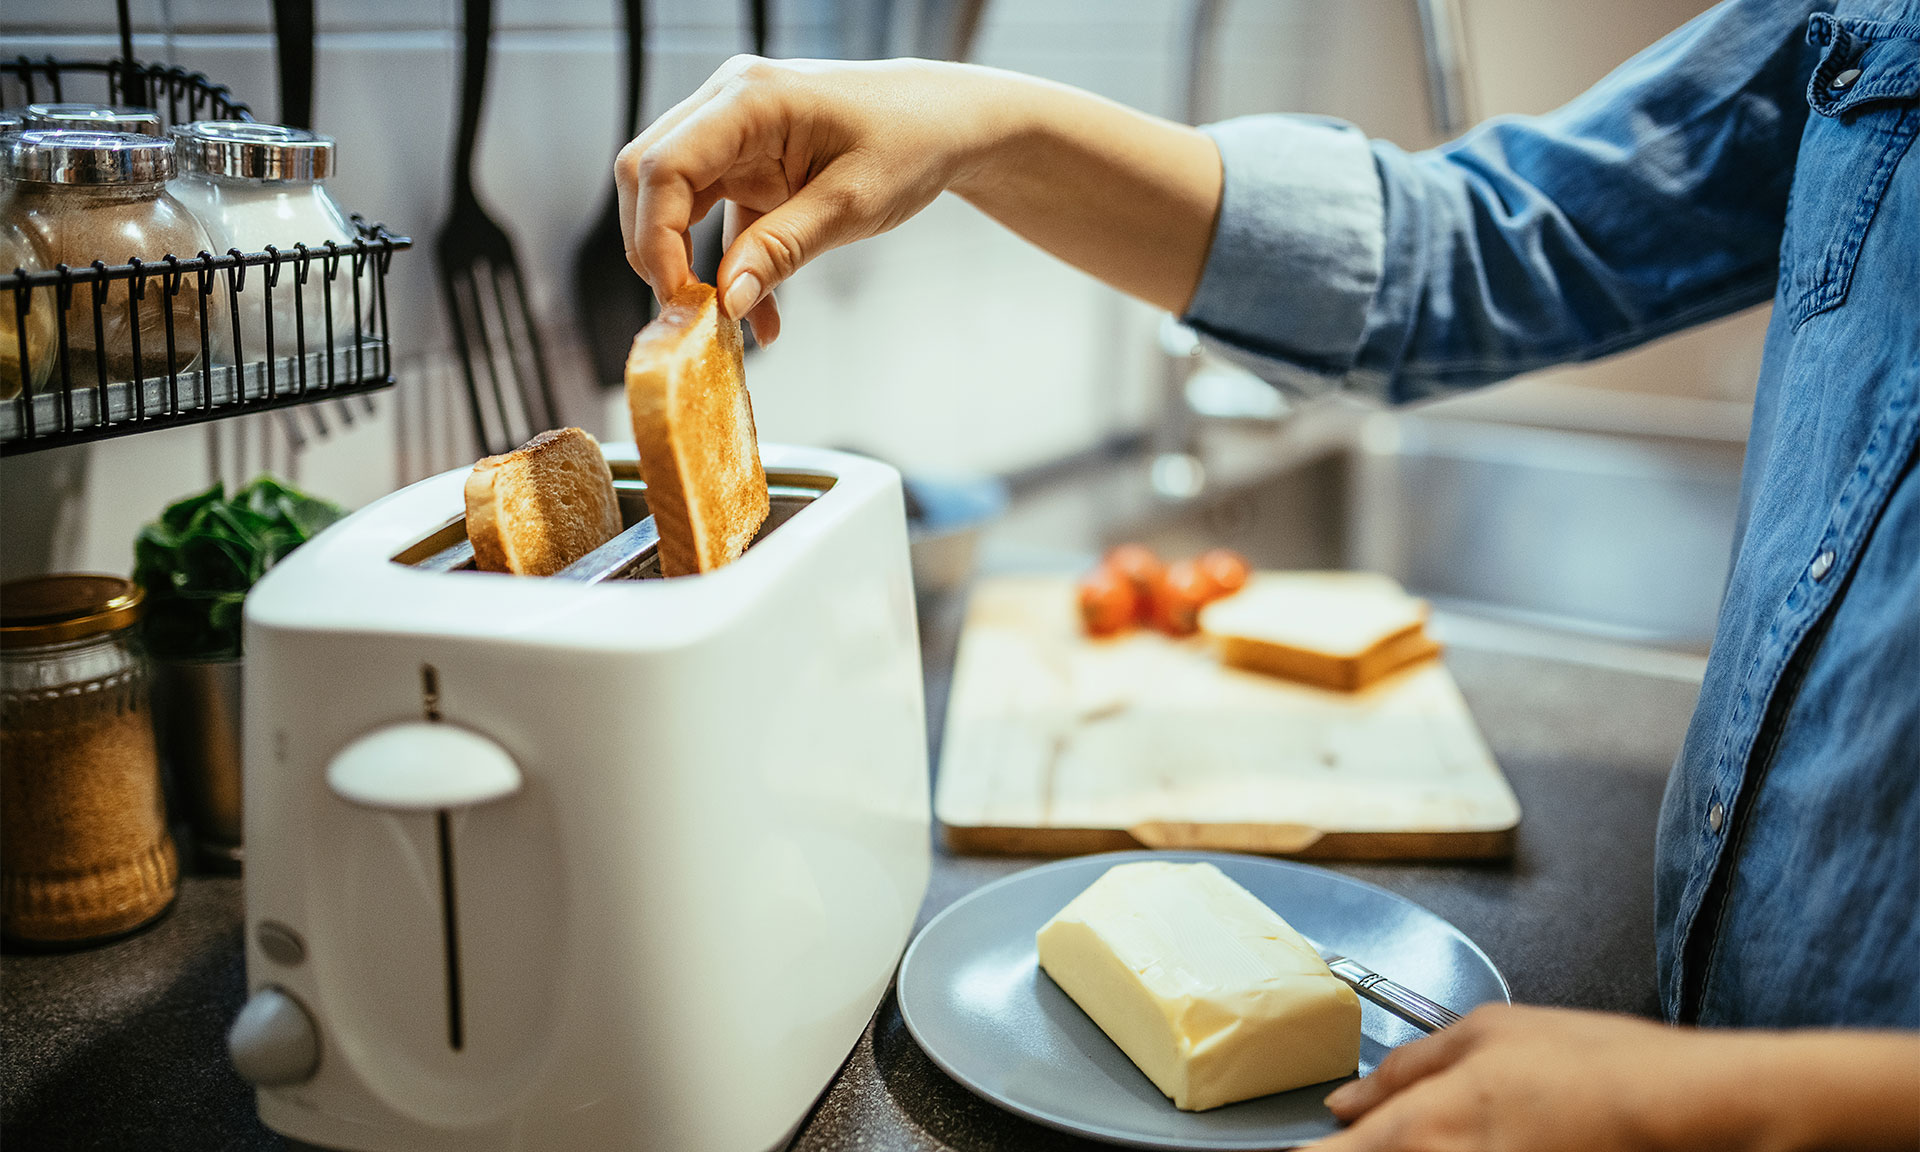 Person removing slices of toast from a toaster